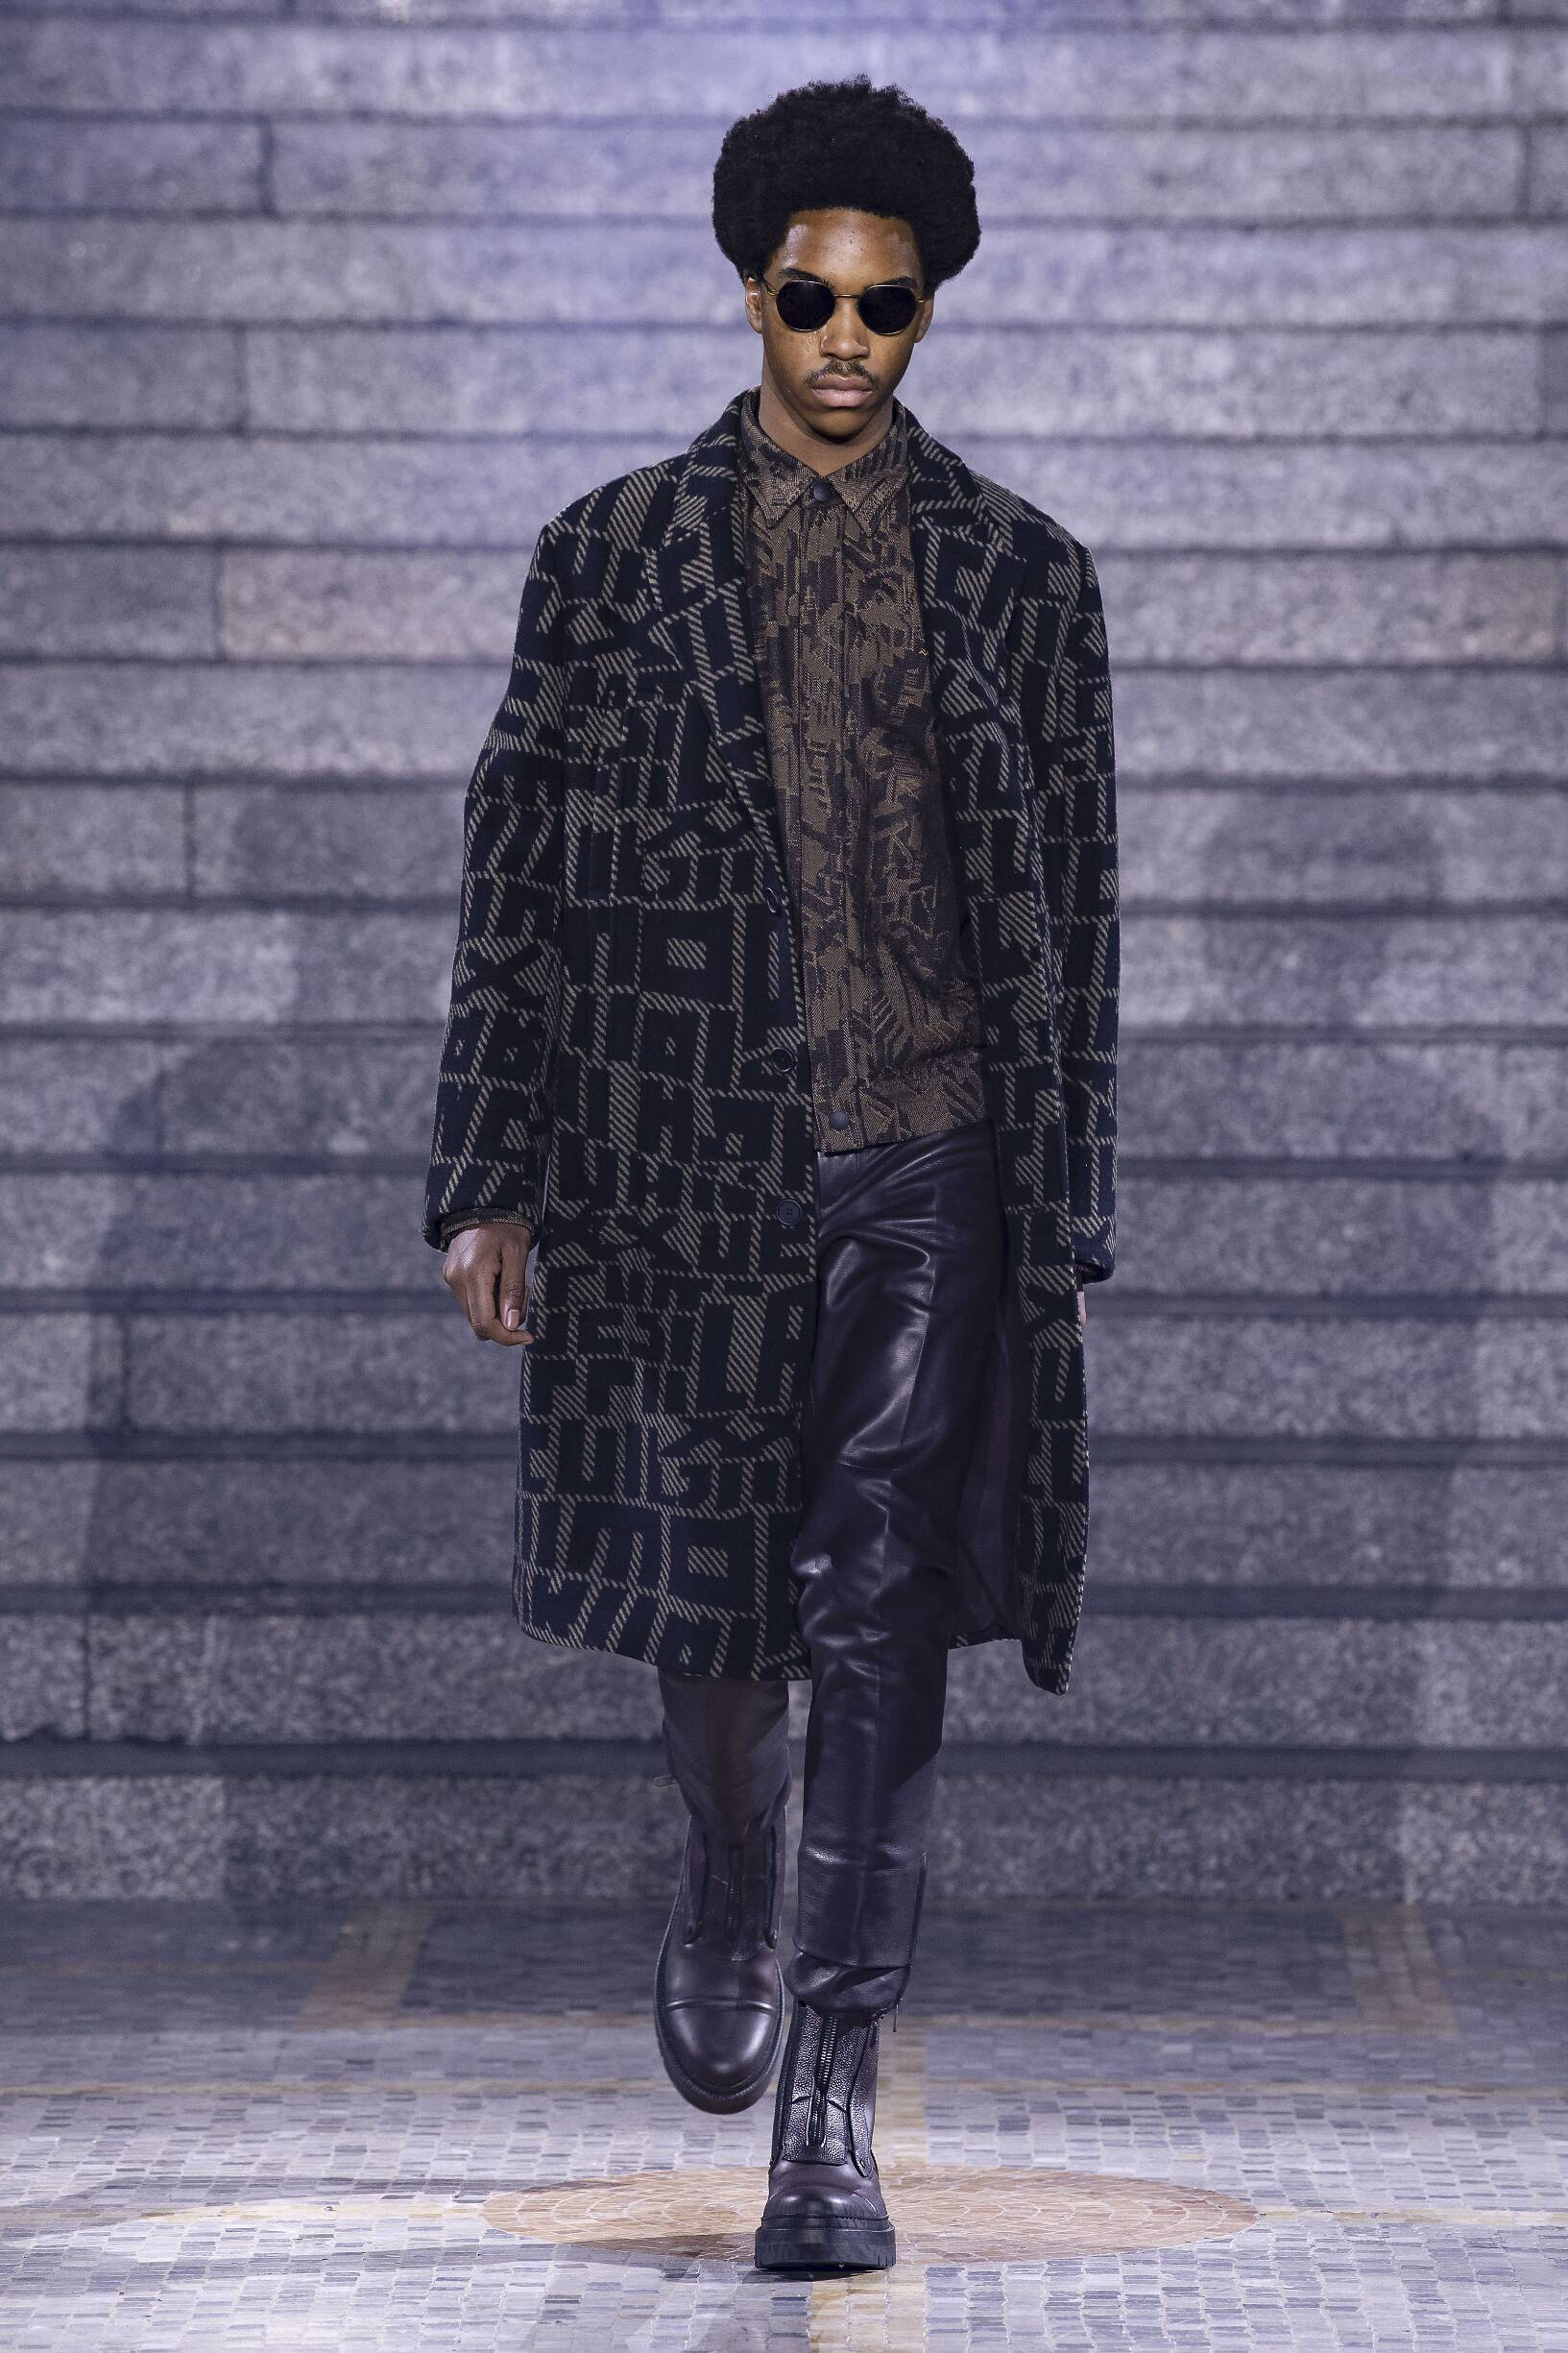 Catwalk Ermenegildo Zegna Winter 2019